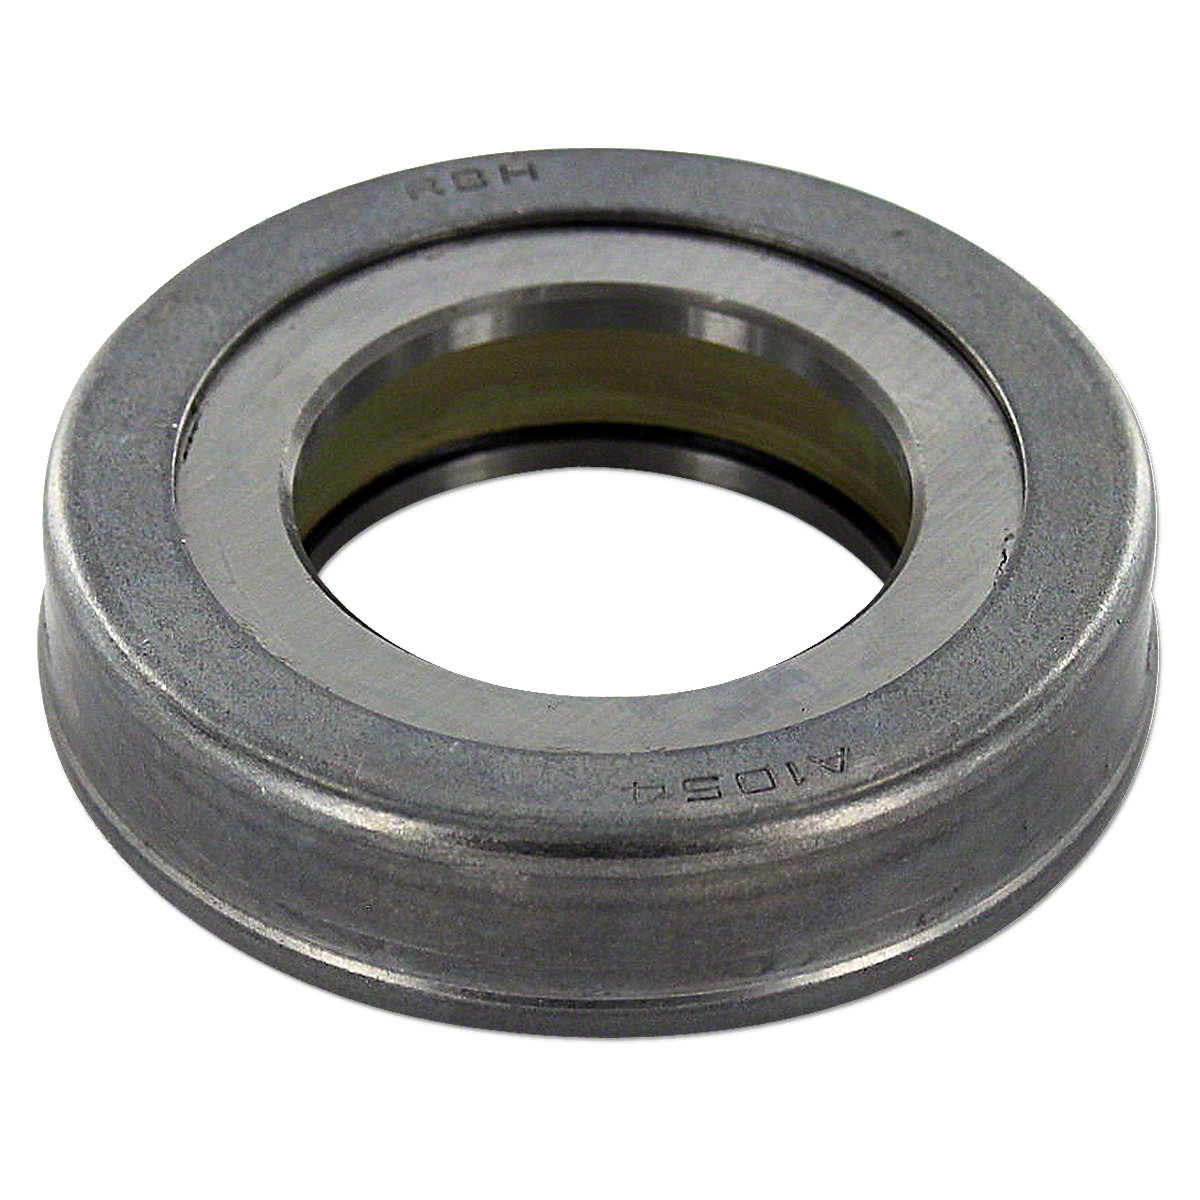 Throw Out Bearing For Allis Chalmers: G.